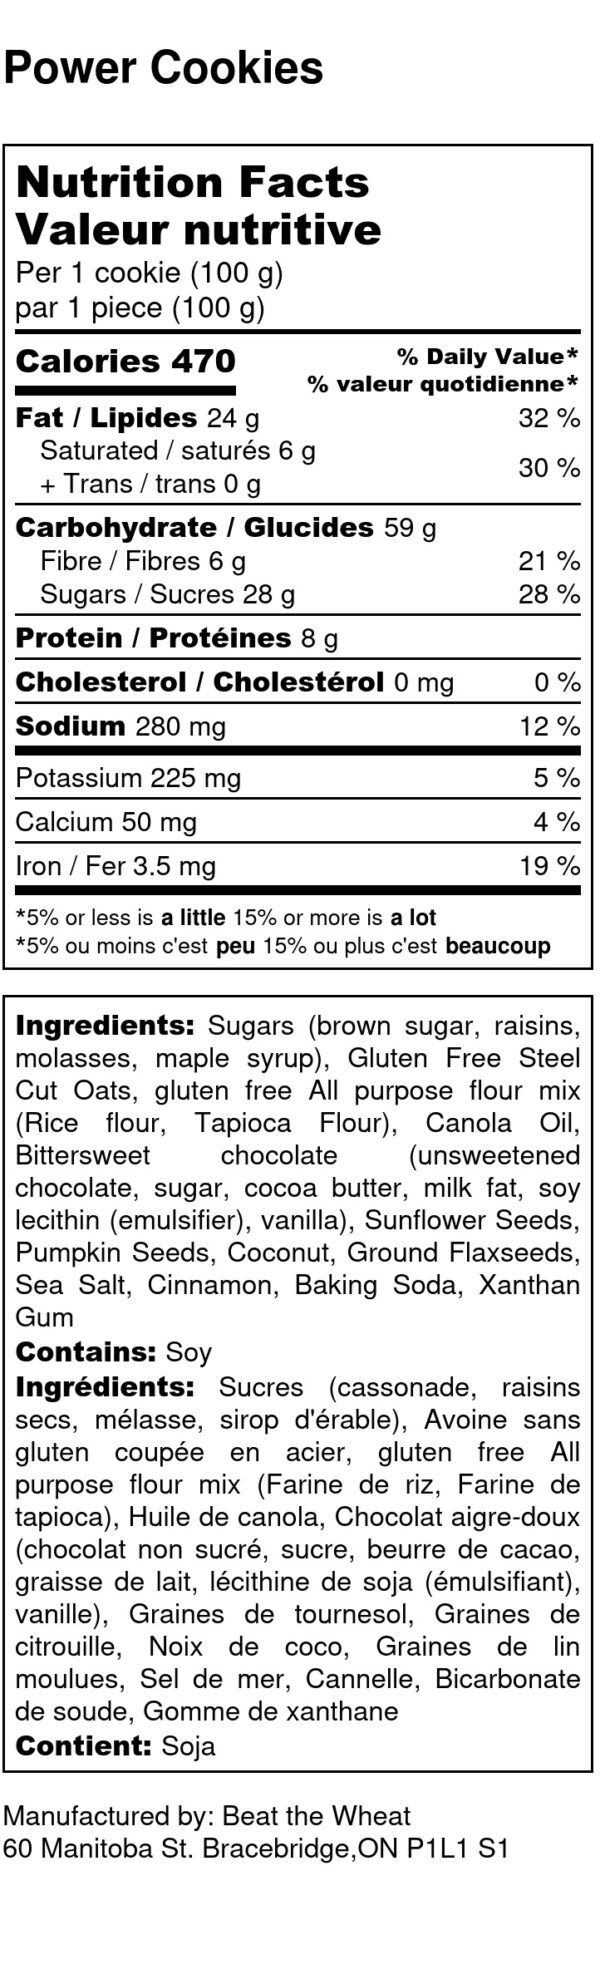 Power Cookies - Nutrition Label